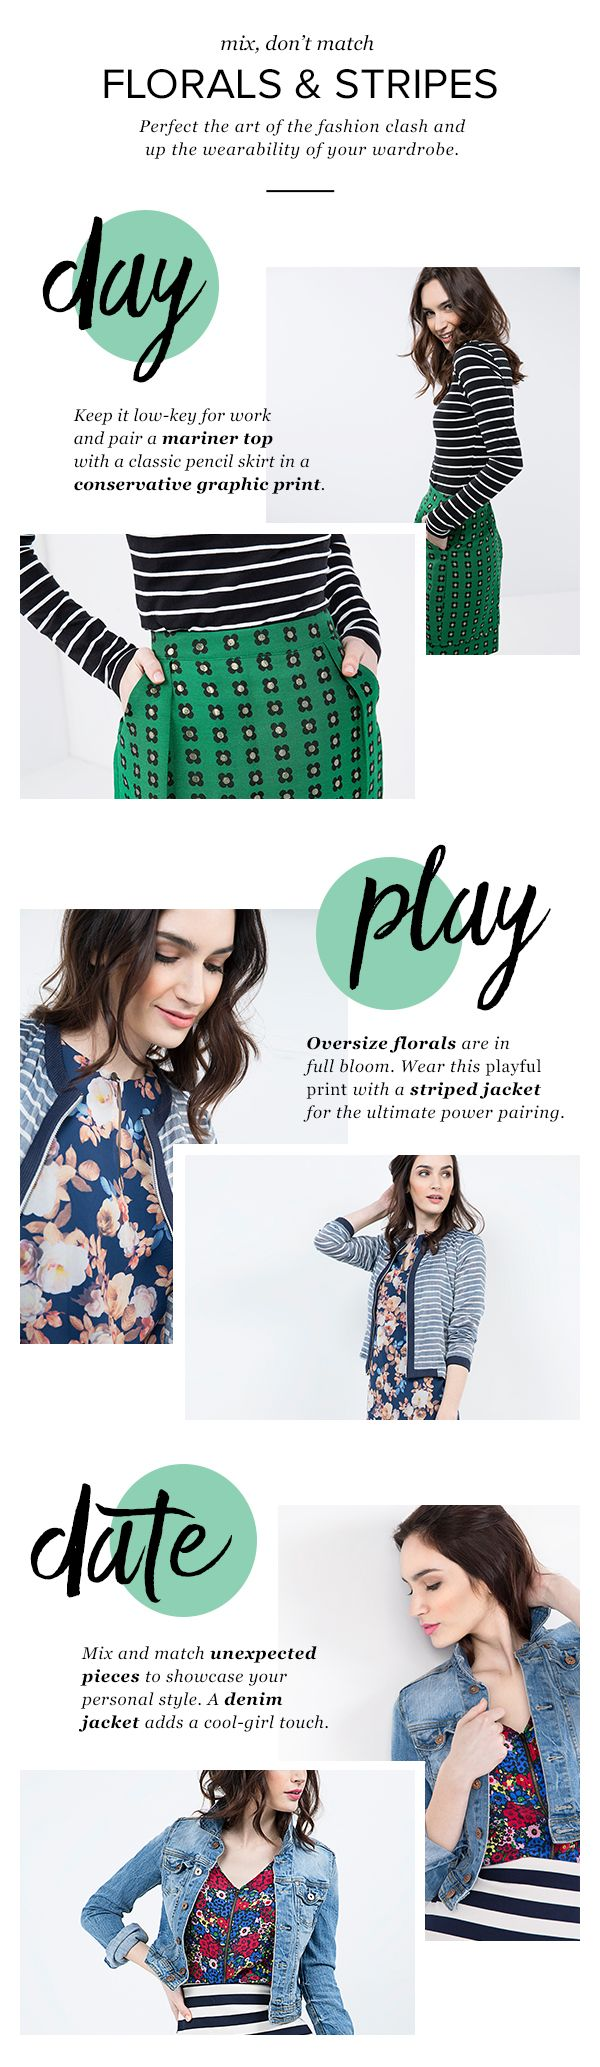 Yes, you CAN pull off floral and stripes. Step out of your fashion comfort zone with thredUP, the largest online consignment shop. Sign up and see why millions of women are thinking secondhand first today.